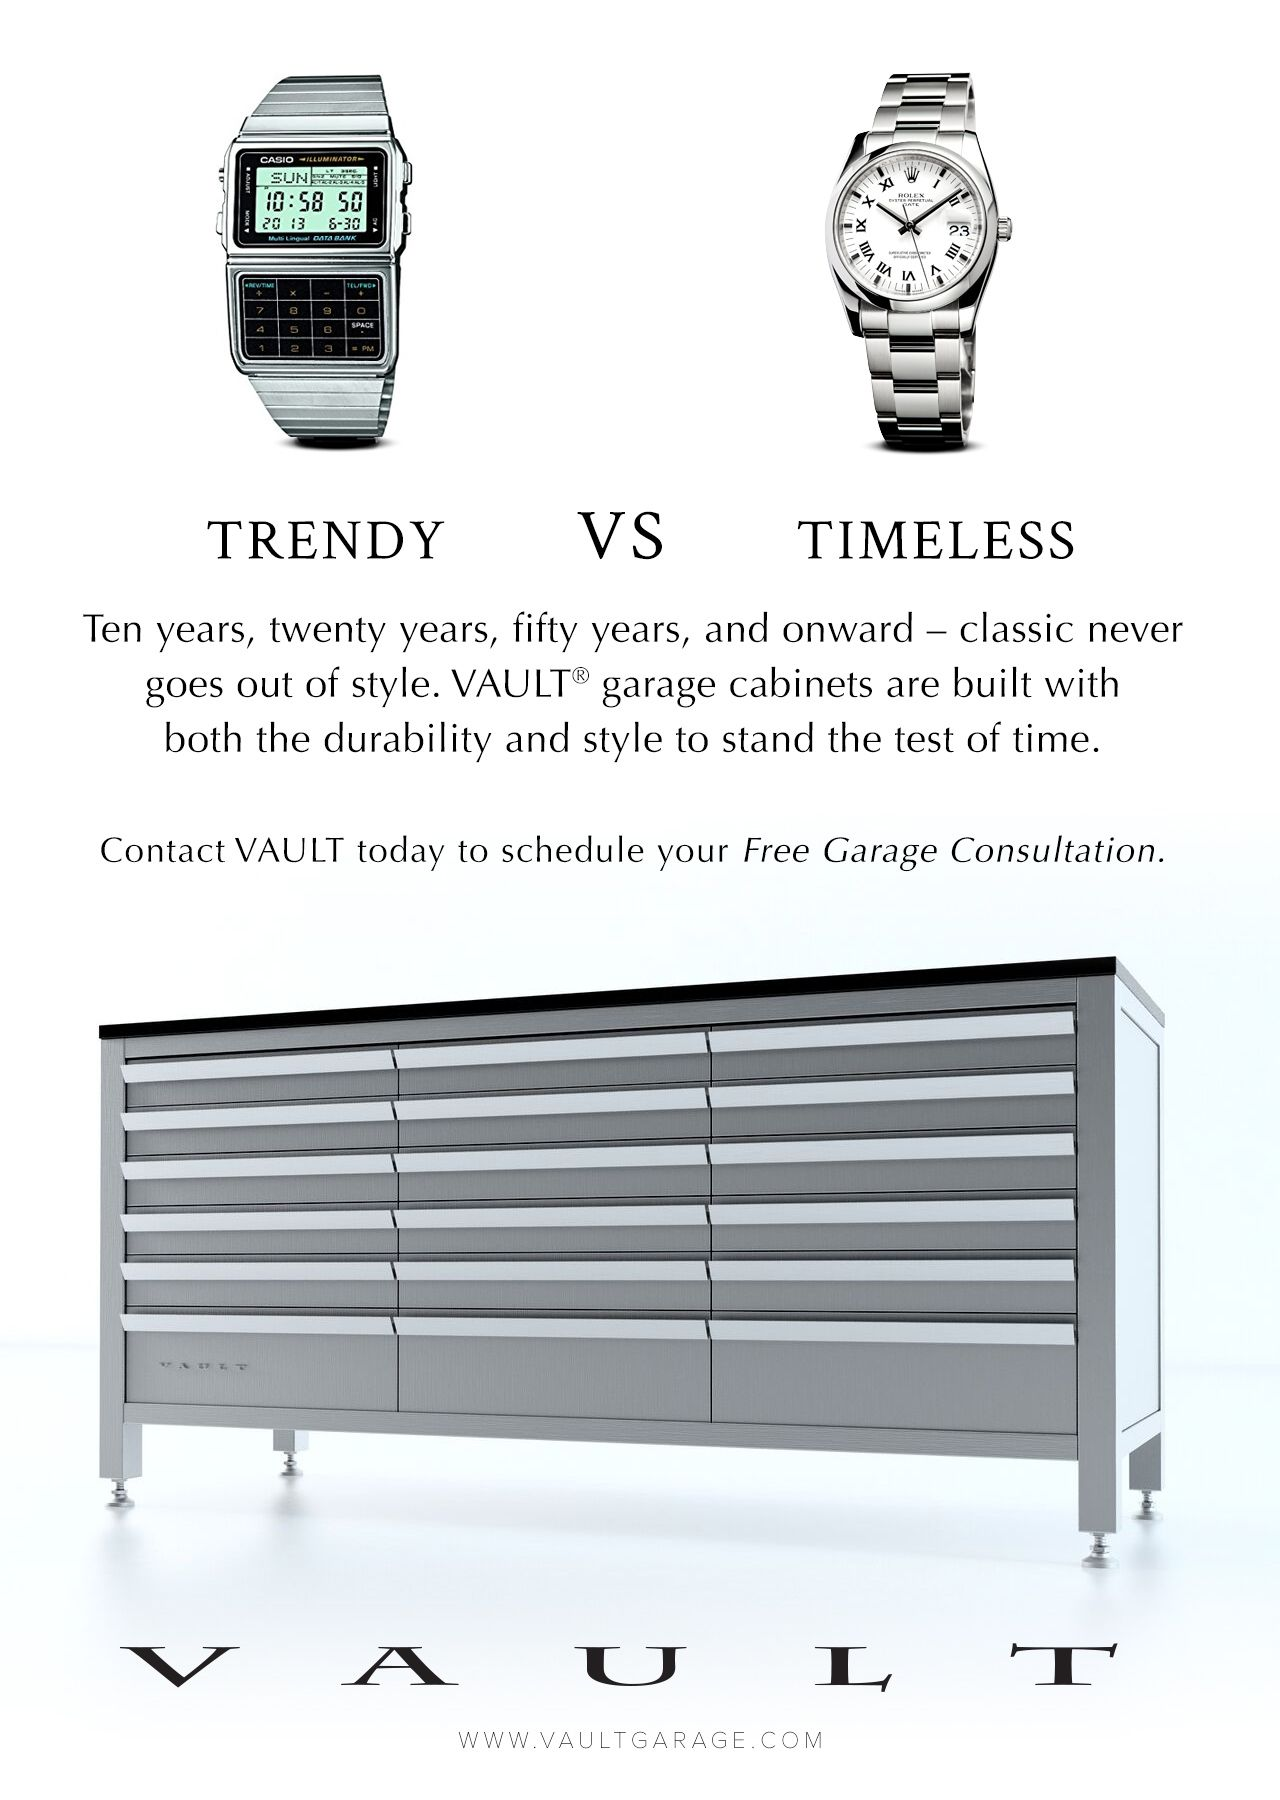 VAULT #garagecabinets are timeless, not trendy. Our newest blog post discusses home design trends that didn't stand the test of time, and how to avoid chasing after the wrong fashions. Visit the VAULT Garage blog for the full article & a free garage design consultation.